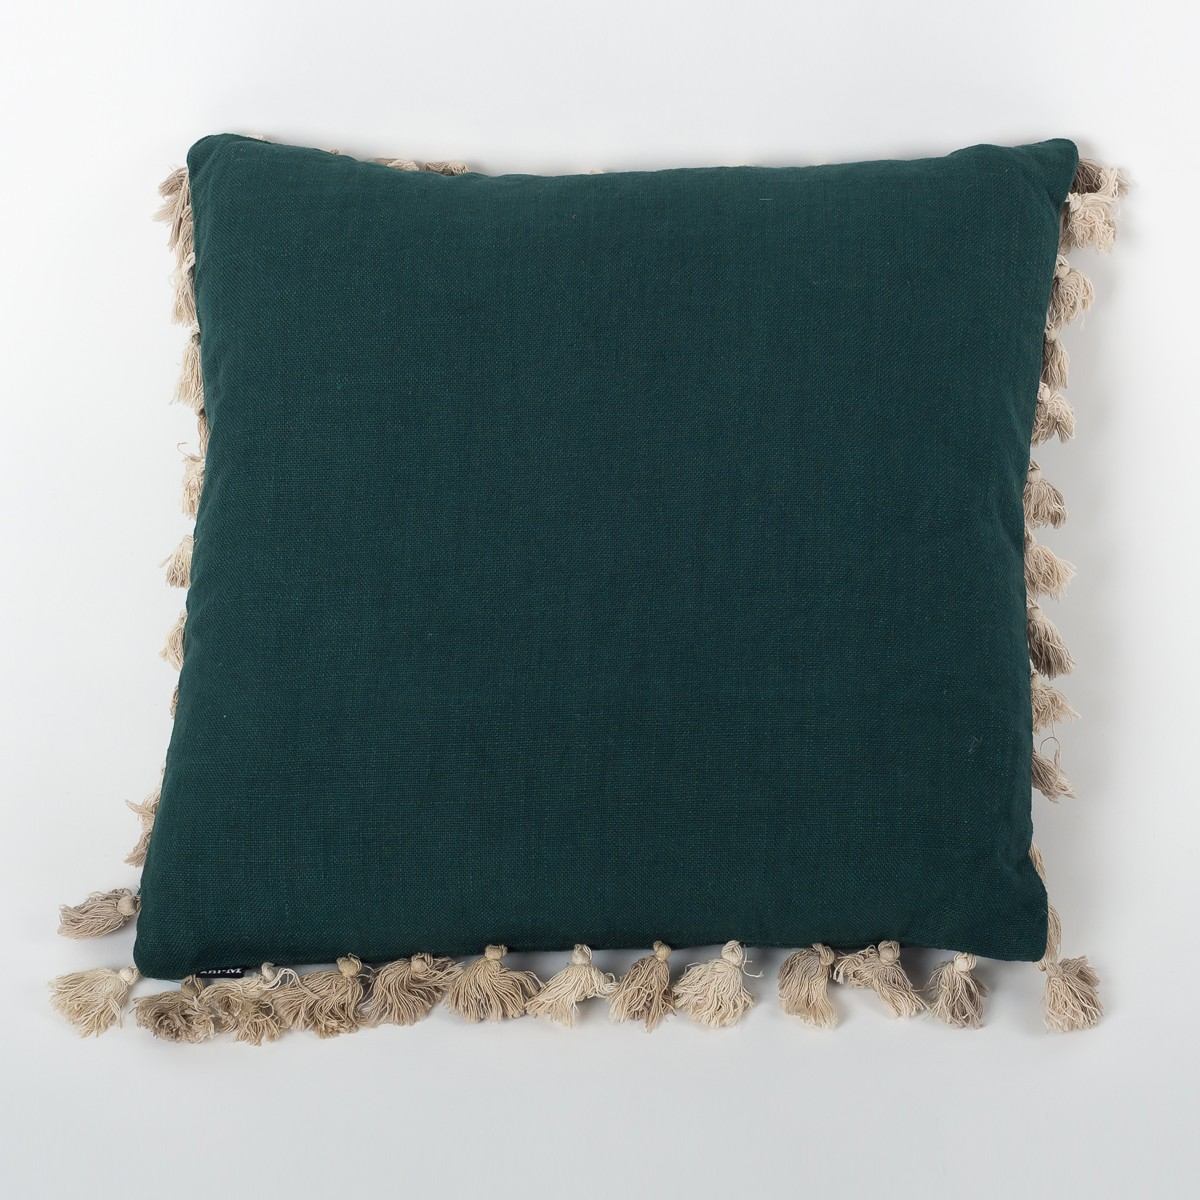 Moss Green Linen Cushion Cover with Tassels